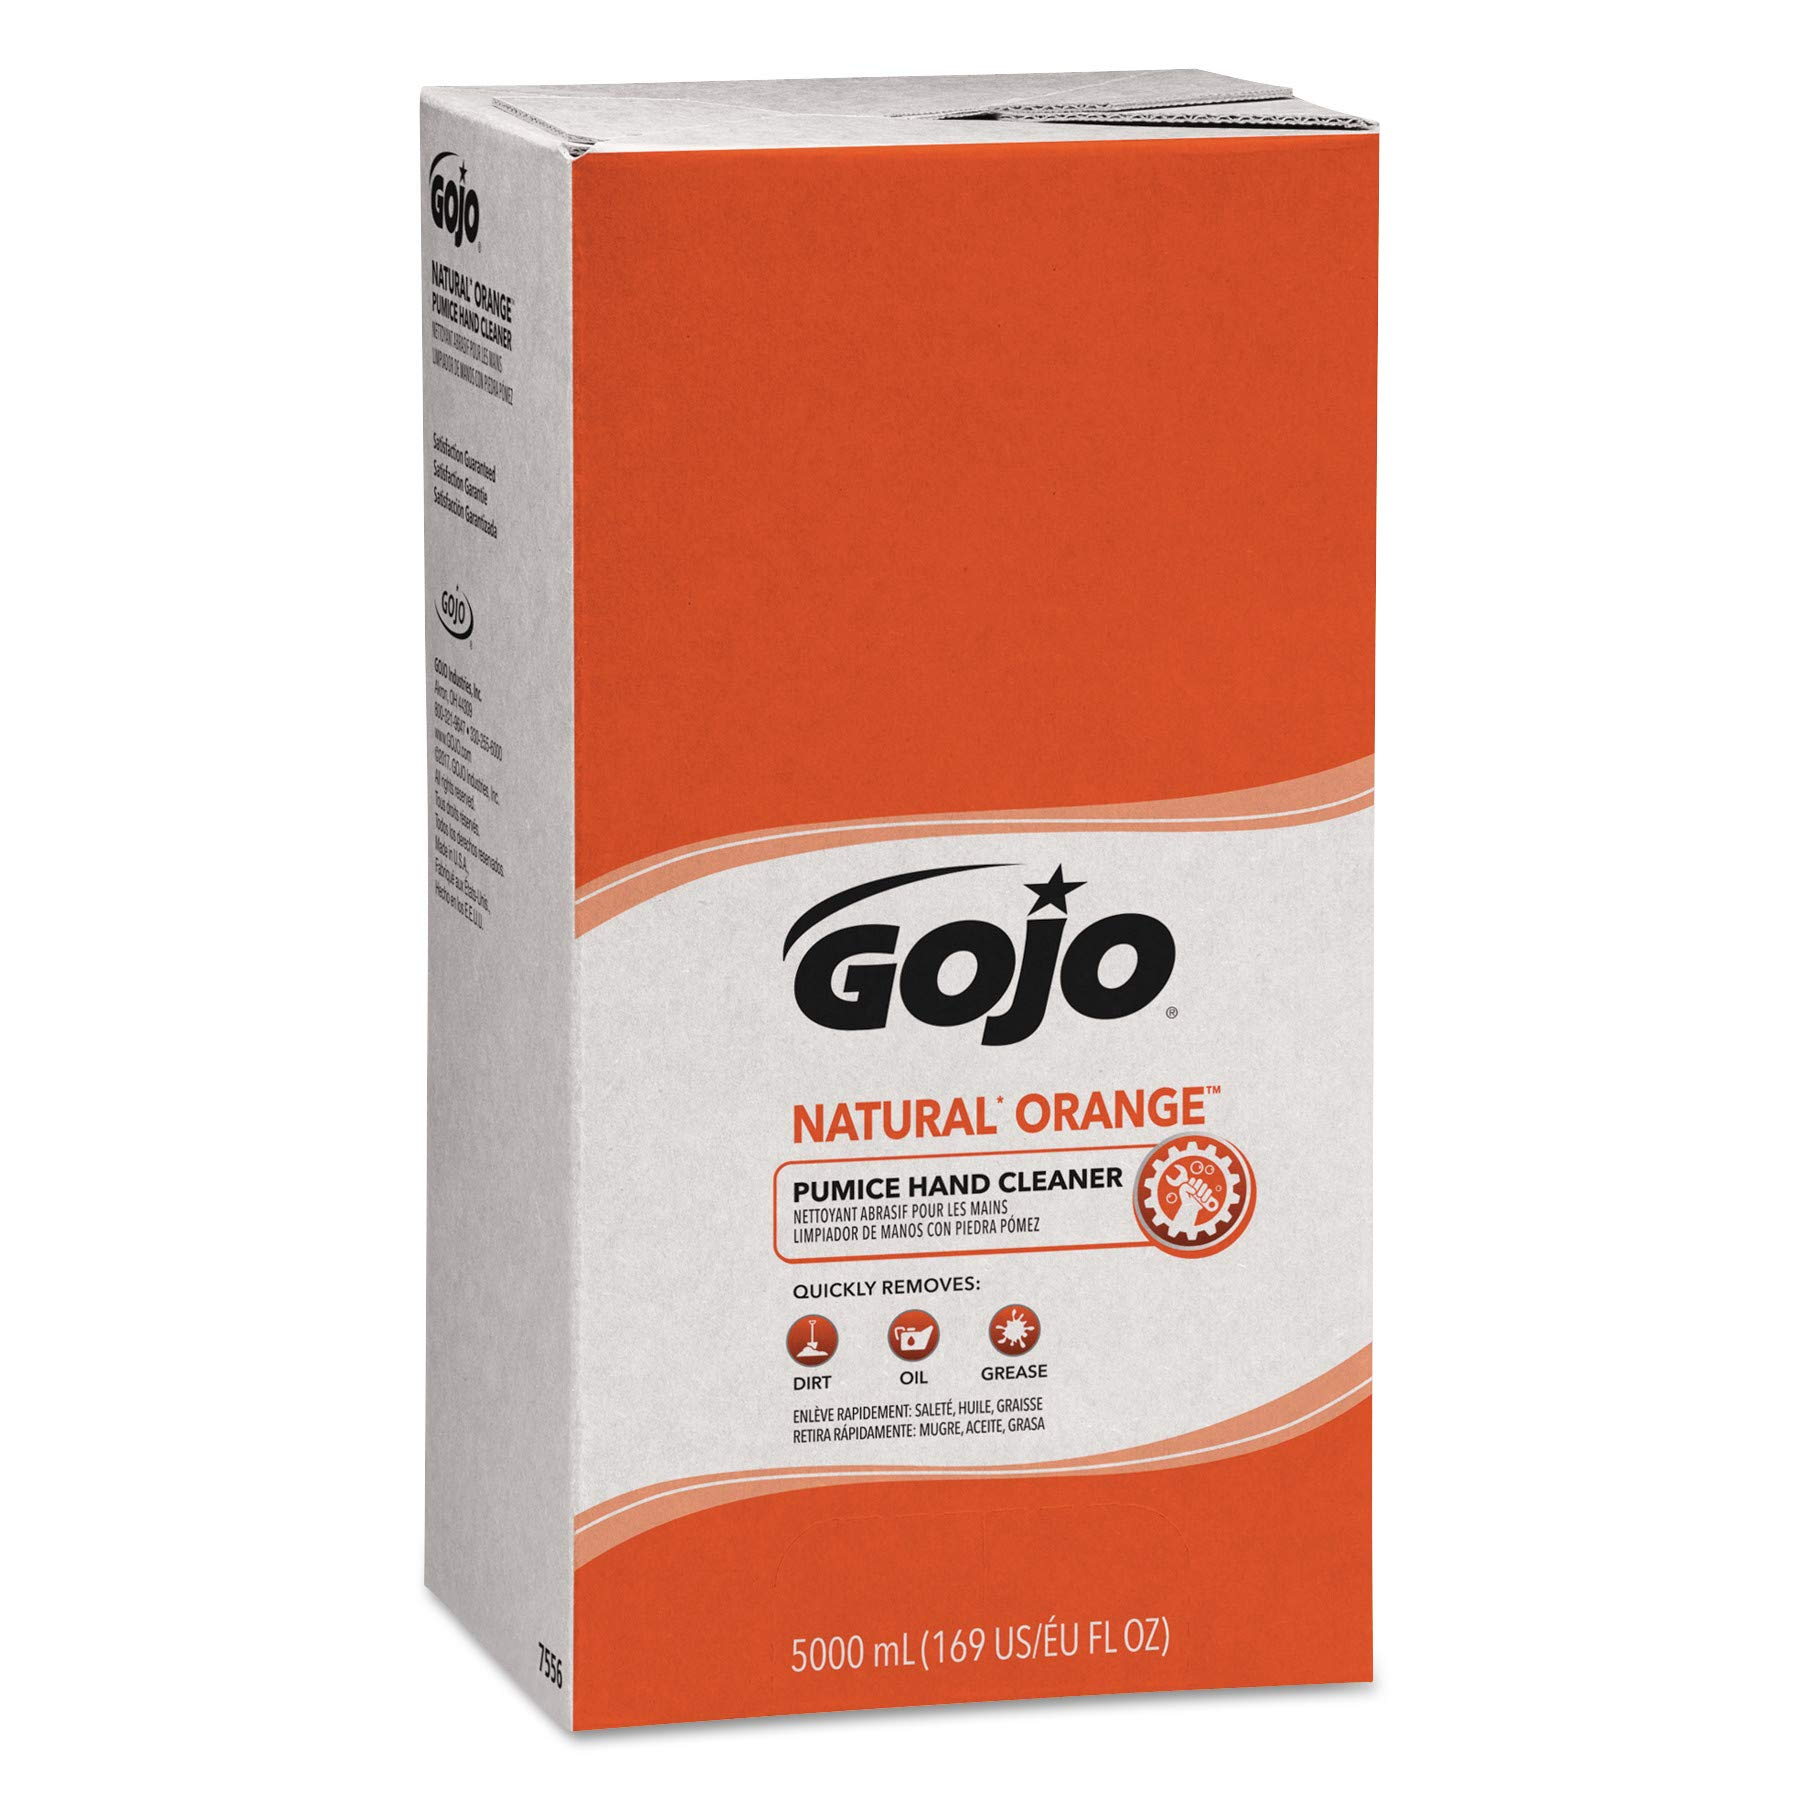 GOJO NATURAL ORANGE Pumice Industrial Hand Cleaner, 5000 mL Quick Acting Lotion Hand Cleaner Refill for GOJO PRO TDX Dispenser (Pack of 2) - 7556-02 by Gojo (Image #7)